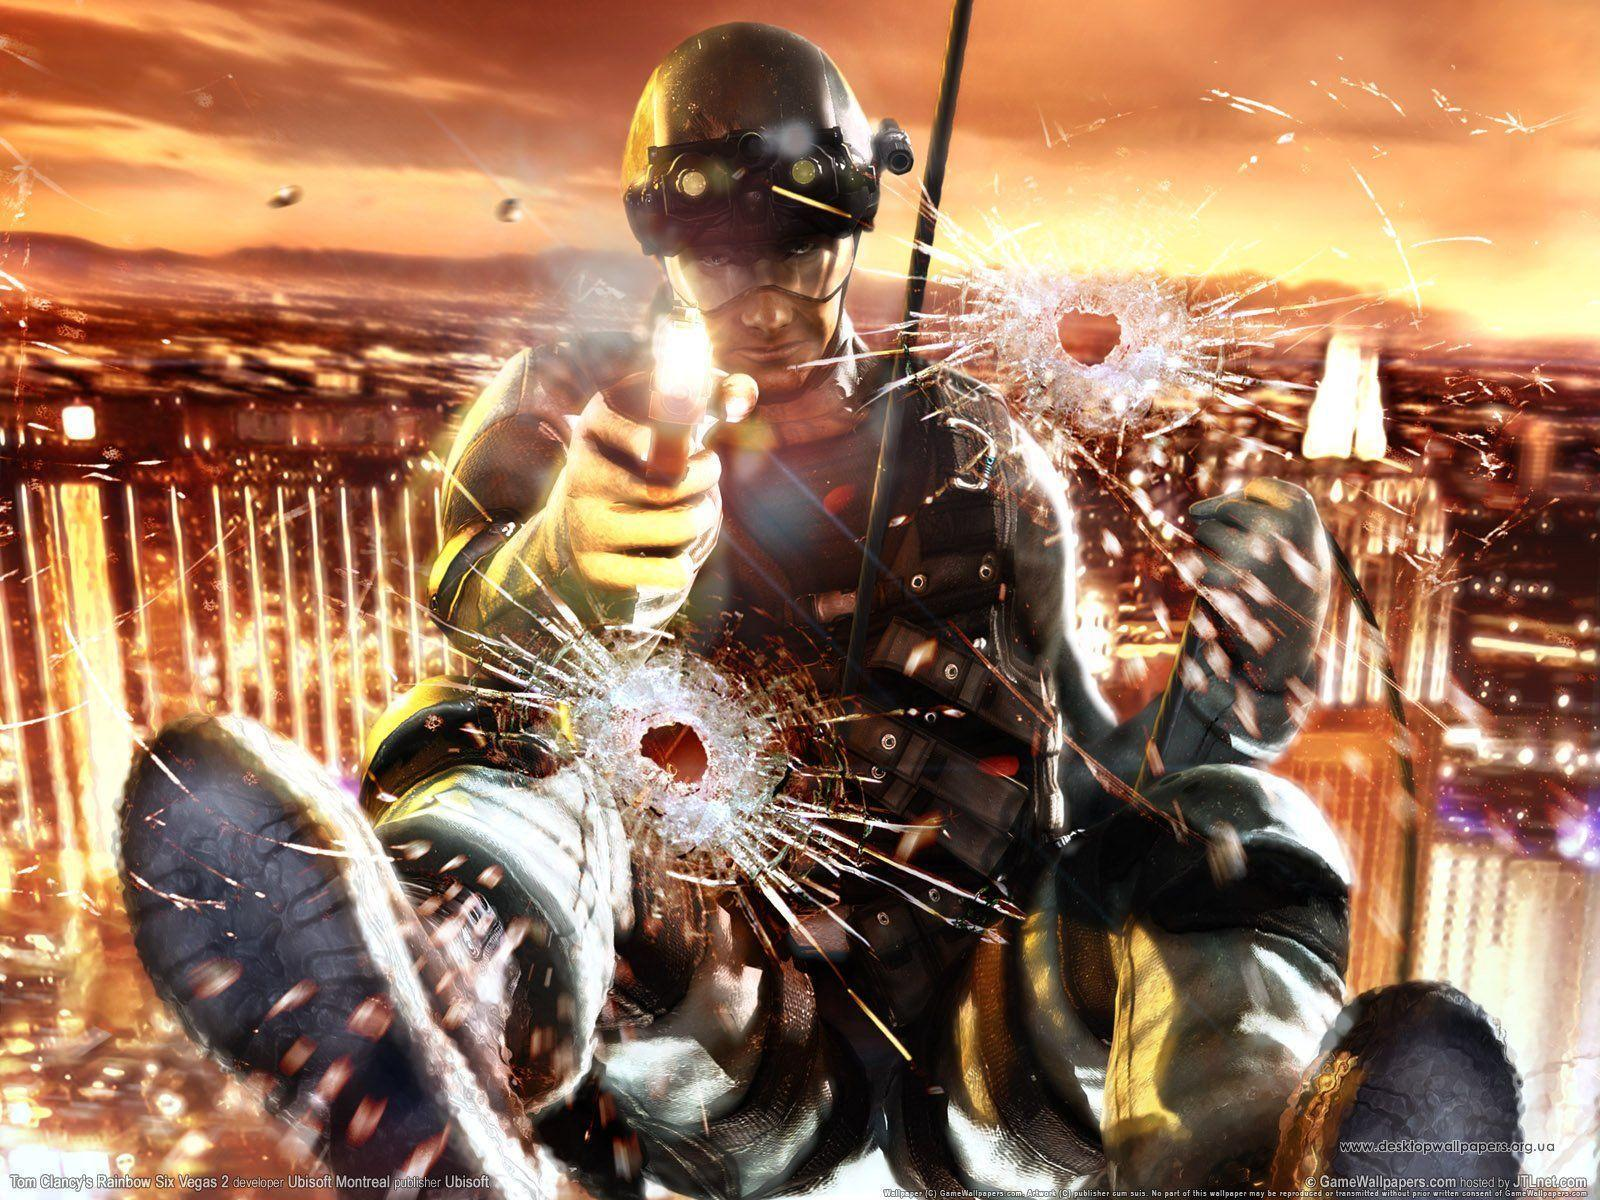 Best Game Wallpaper: Tom Clancy's Rainbow Six Vegas